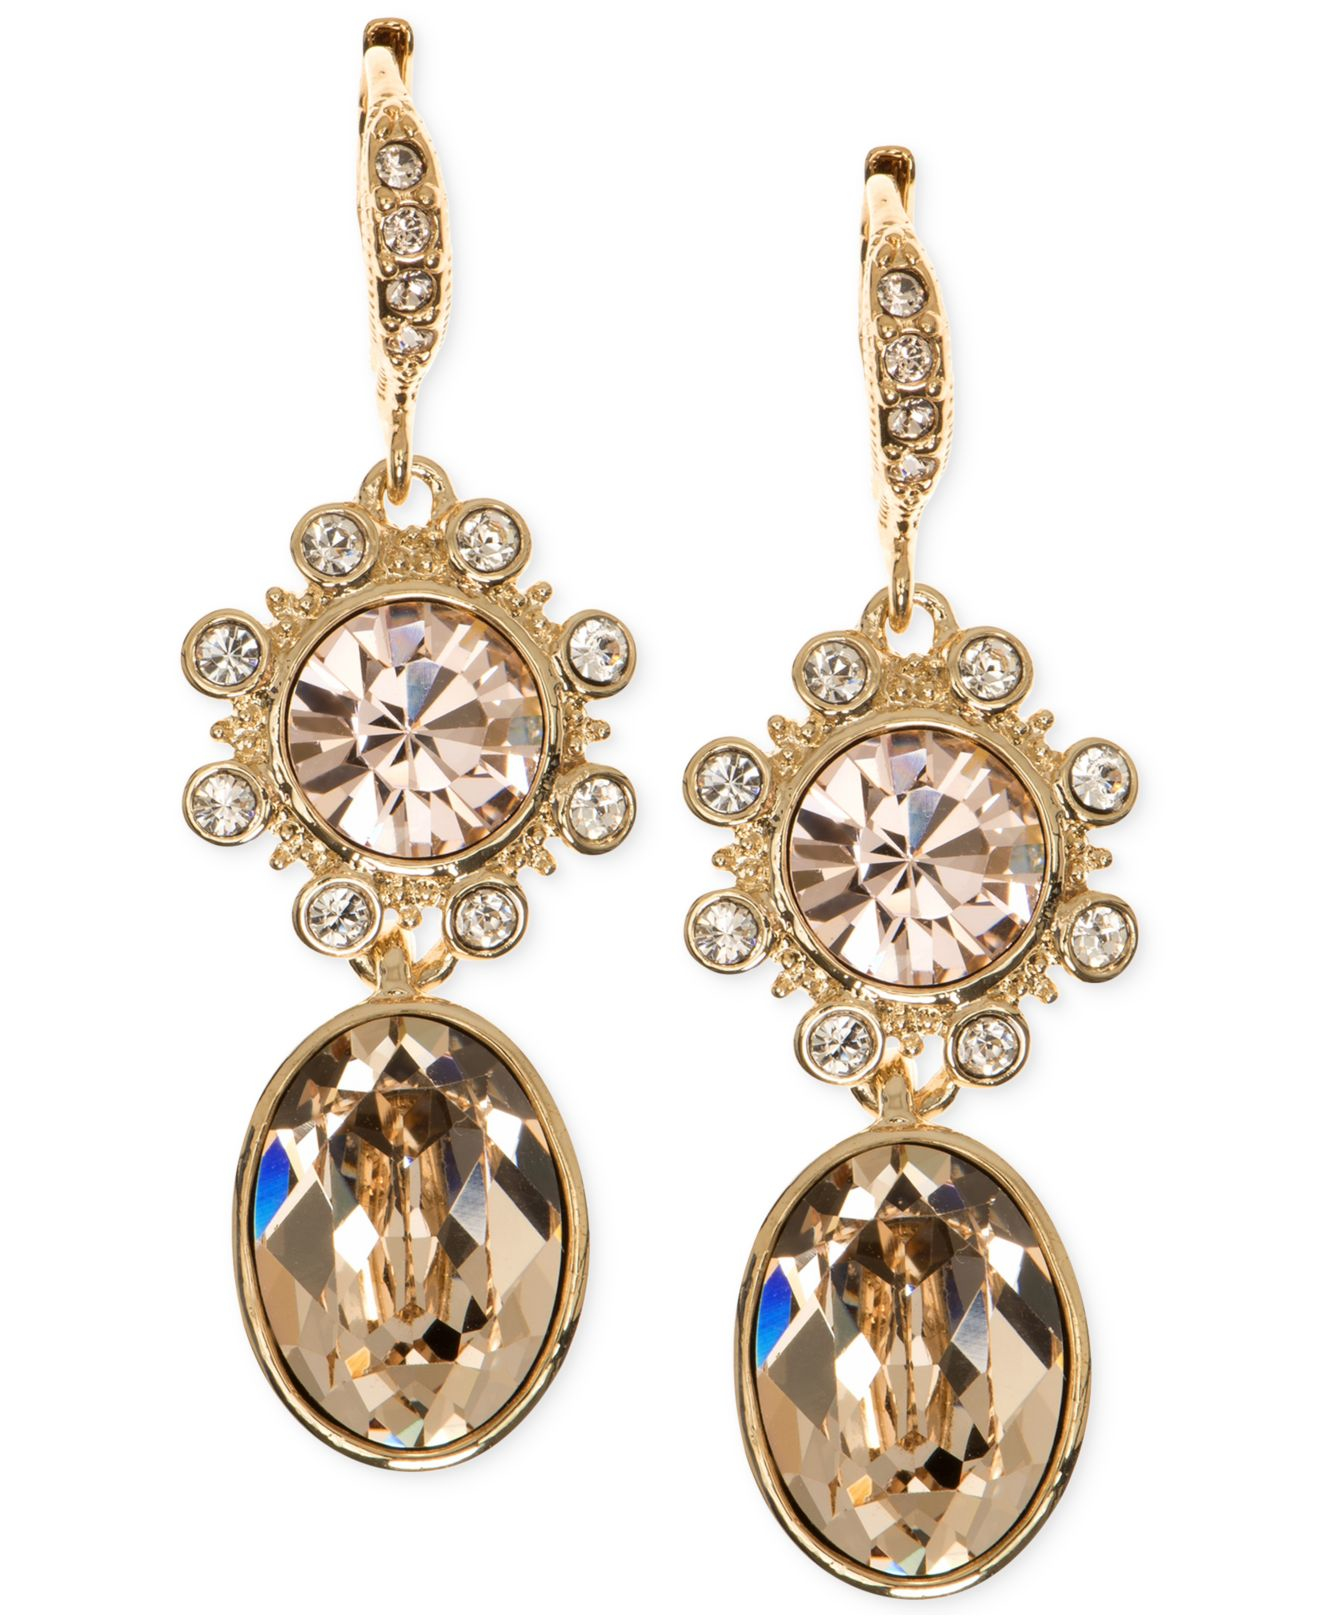 givenchy gold tone austrian glass stud earring and